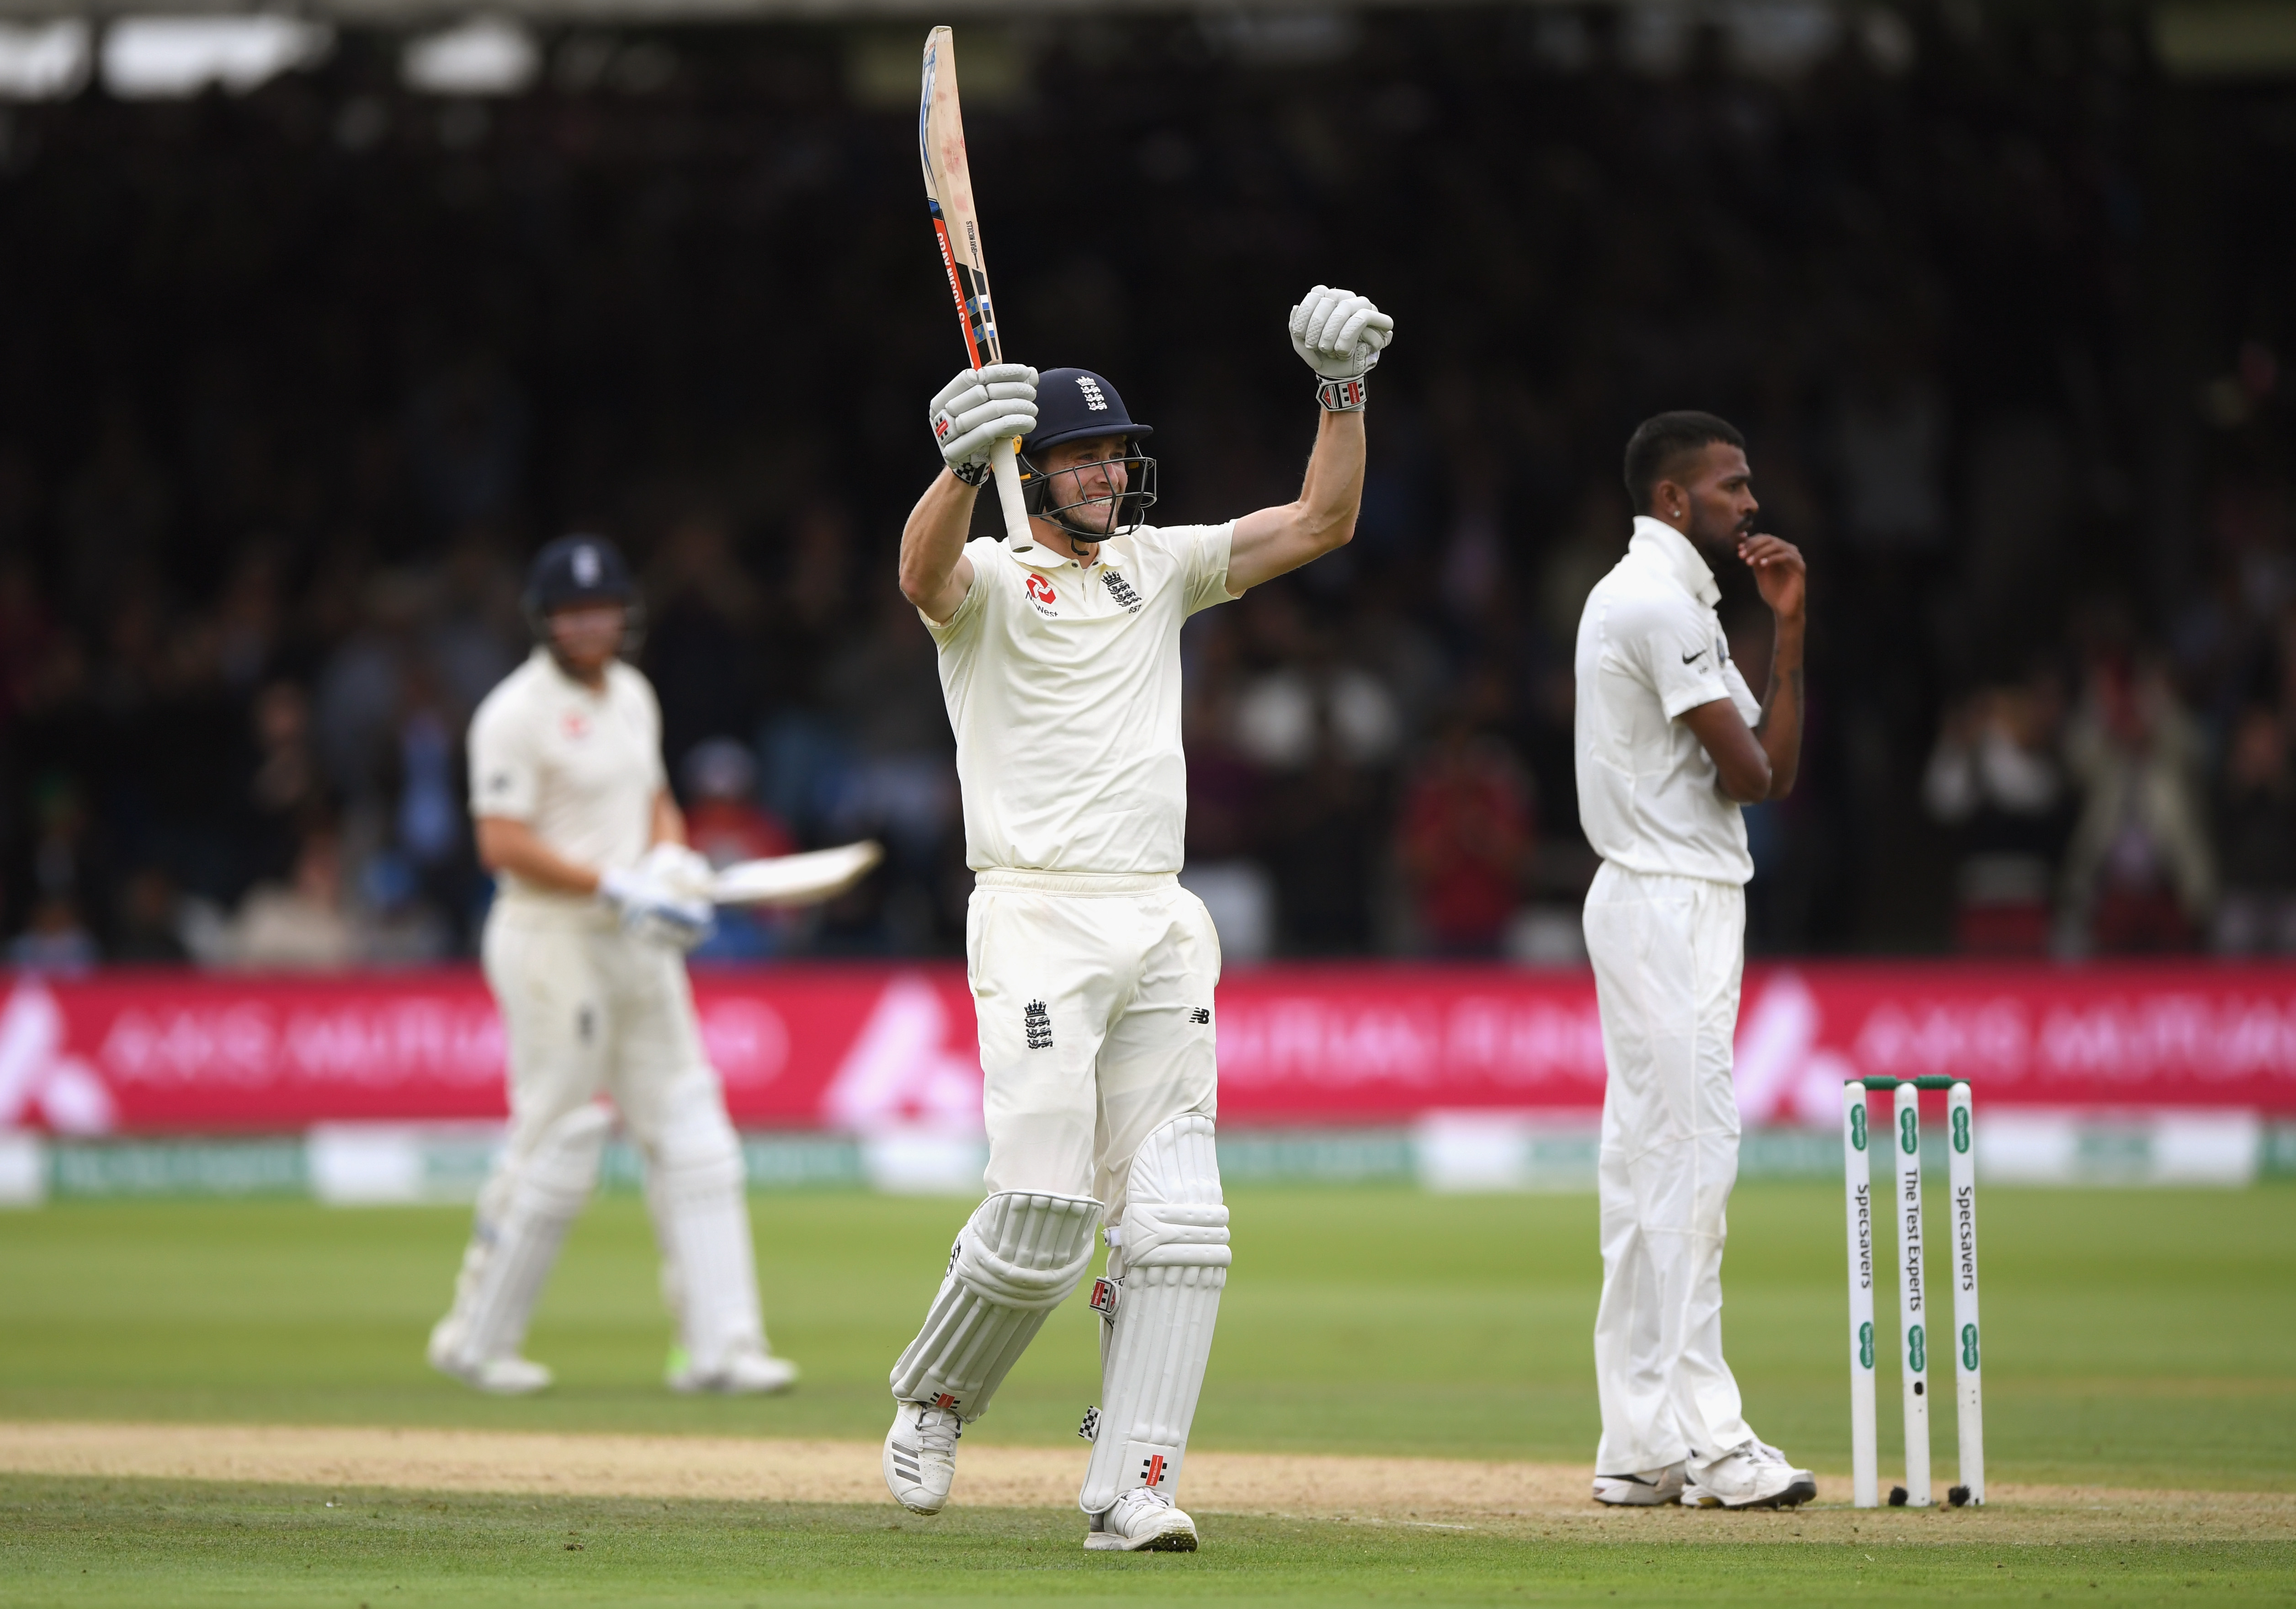 Woakes scored his maiden Test hundred at The Home of Cricket. (Getty)